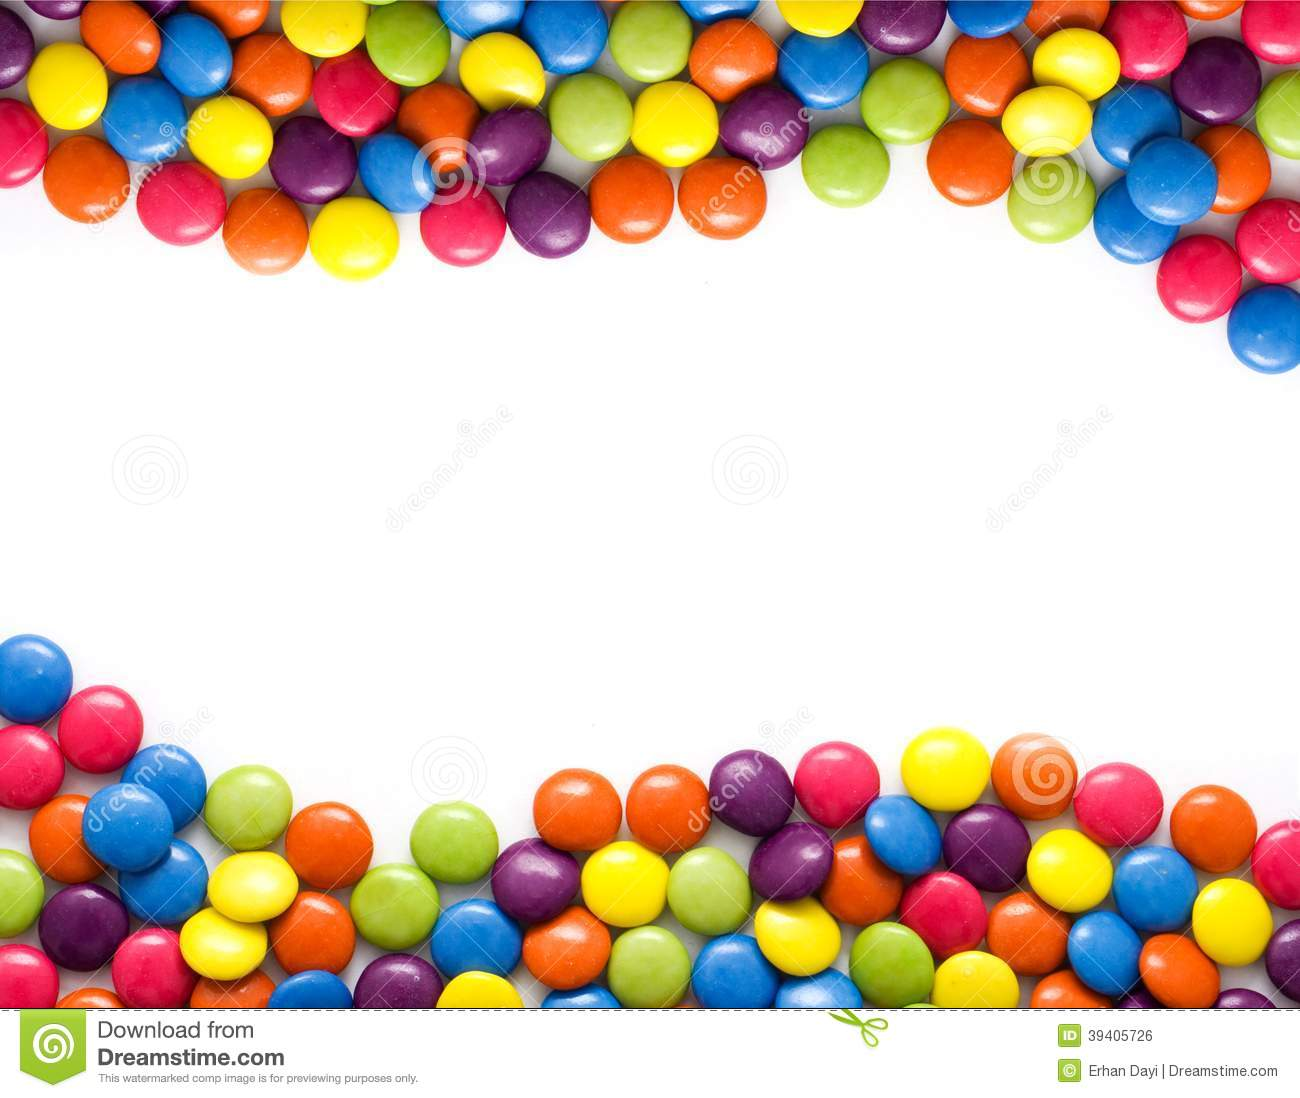 Frame made of colorful candies isolated on white.